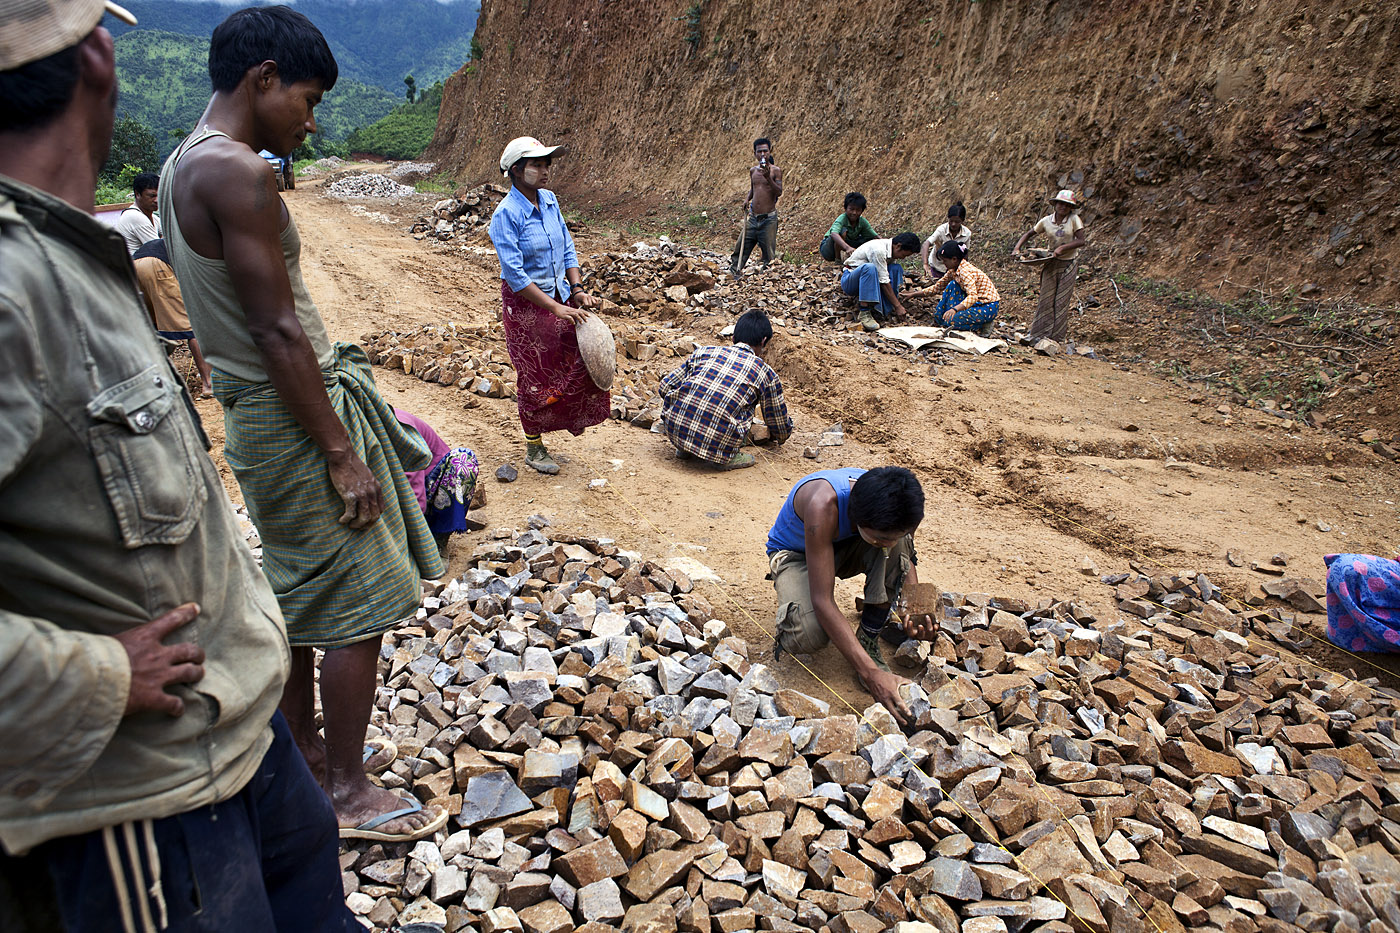 Laborers lay a base course of rough stone to the Namshan – Hsipaw road.  The road is the main artery for transporting tea south to the larger markets of Mandalay and Yangon.  Because the road is unpaved the majority of way, the short journey can easily take six hours in the dry season and much longer during the rainy season, when it becomes prone to landslides.